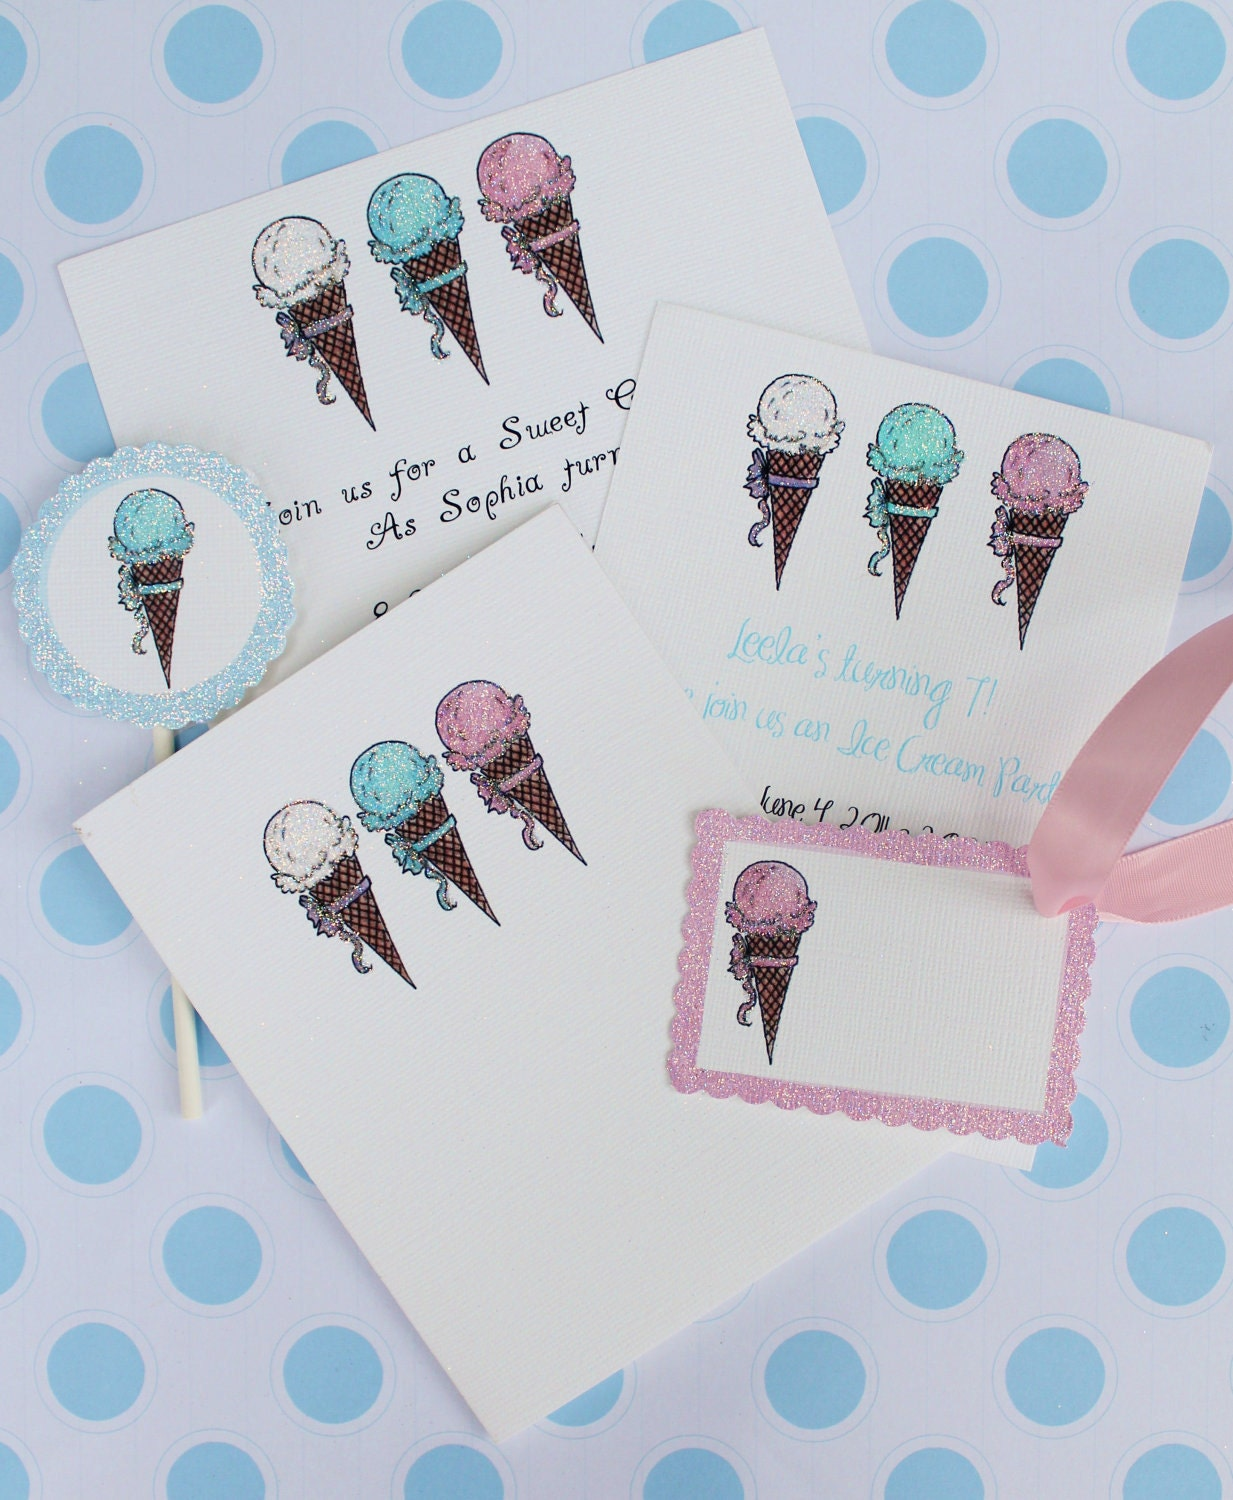 Ice cream cones invitations, note cards, cupcake flags, gift tags